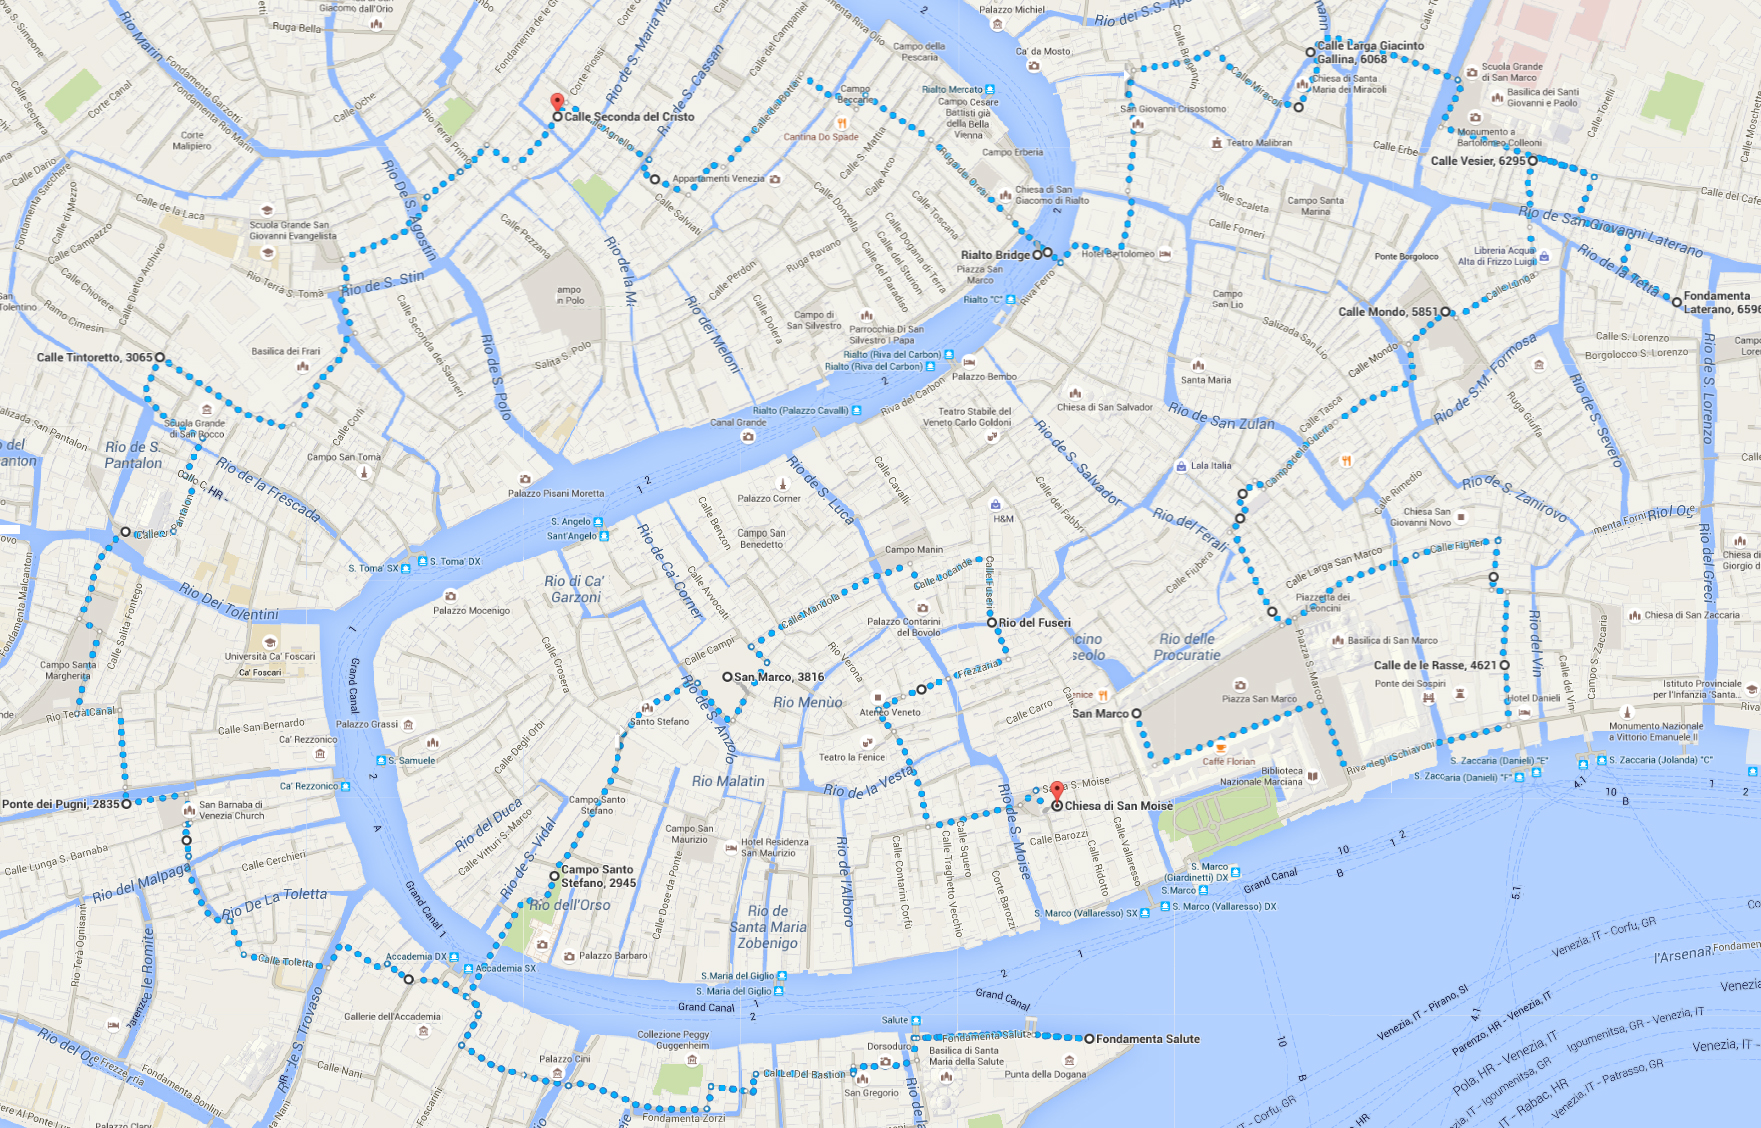 Venice In One Day Places You Must See Walking Map World - Venice map image